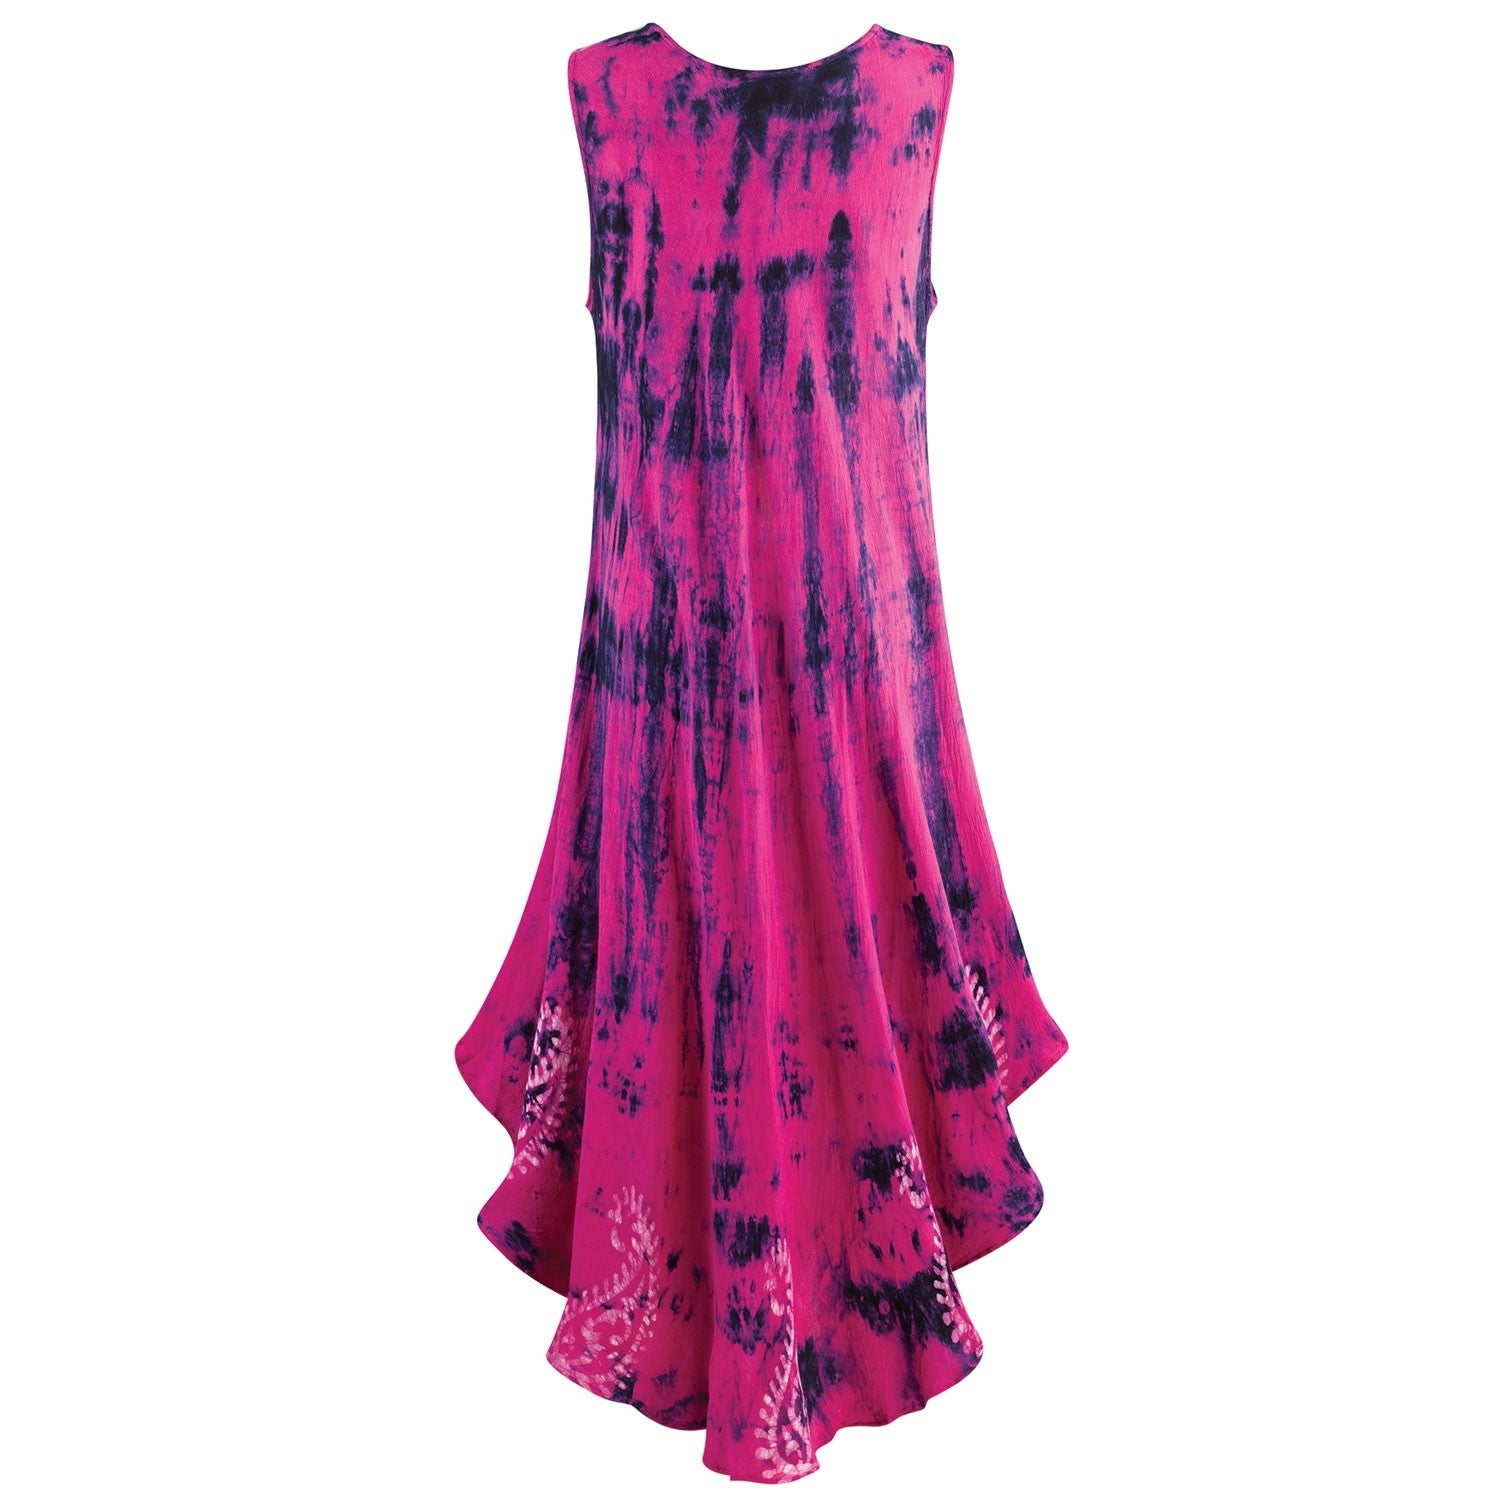 df88b3bb4e9 Shop Catalog Classics Women s Hot Pink   Navy Tie-Dye Sundress -Midi Dress  Hi-Low Hem - On Sale - Free Shipping On Orders Over  45 - Overstock -  22702619